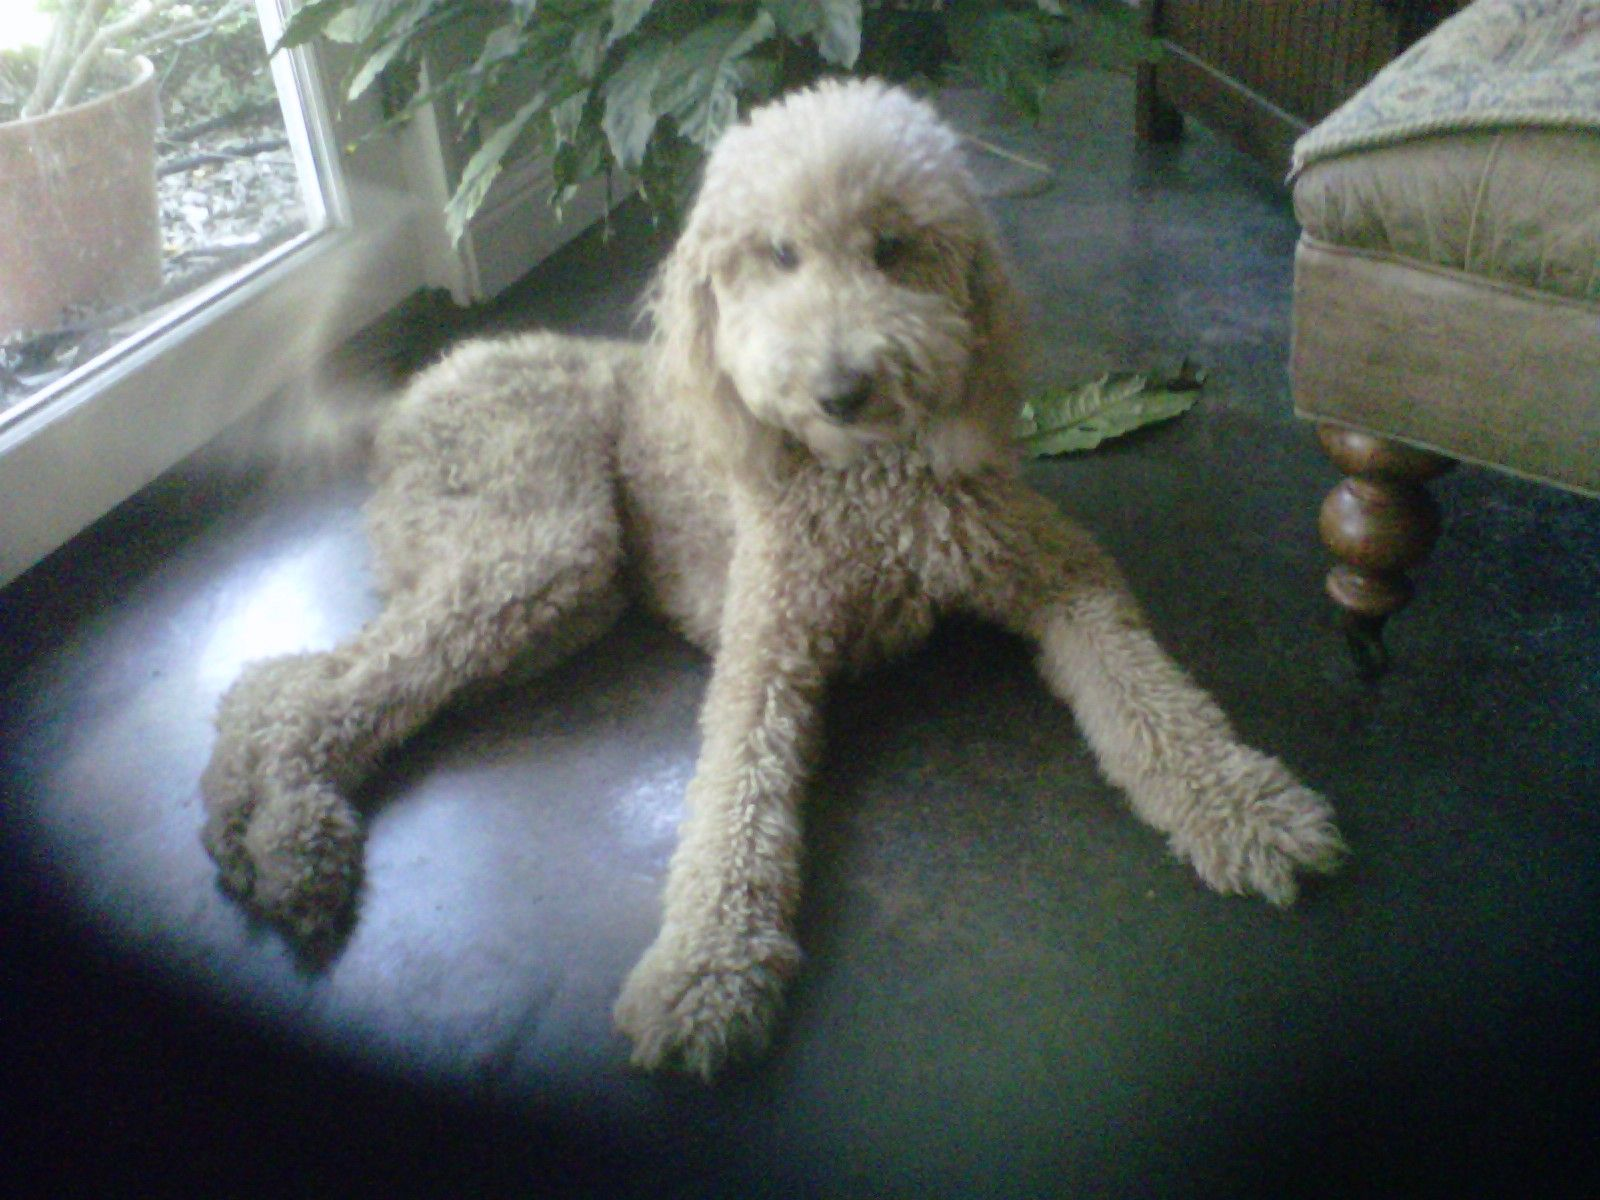 Standard poodle haircuts or of unless soft haircuts standard poodle - My Standard Poodle Dolly